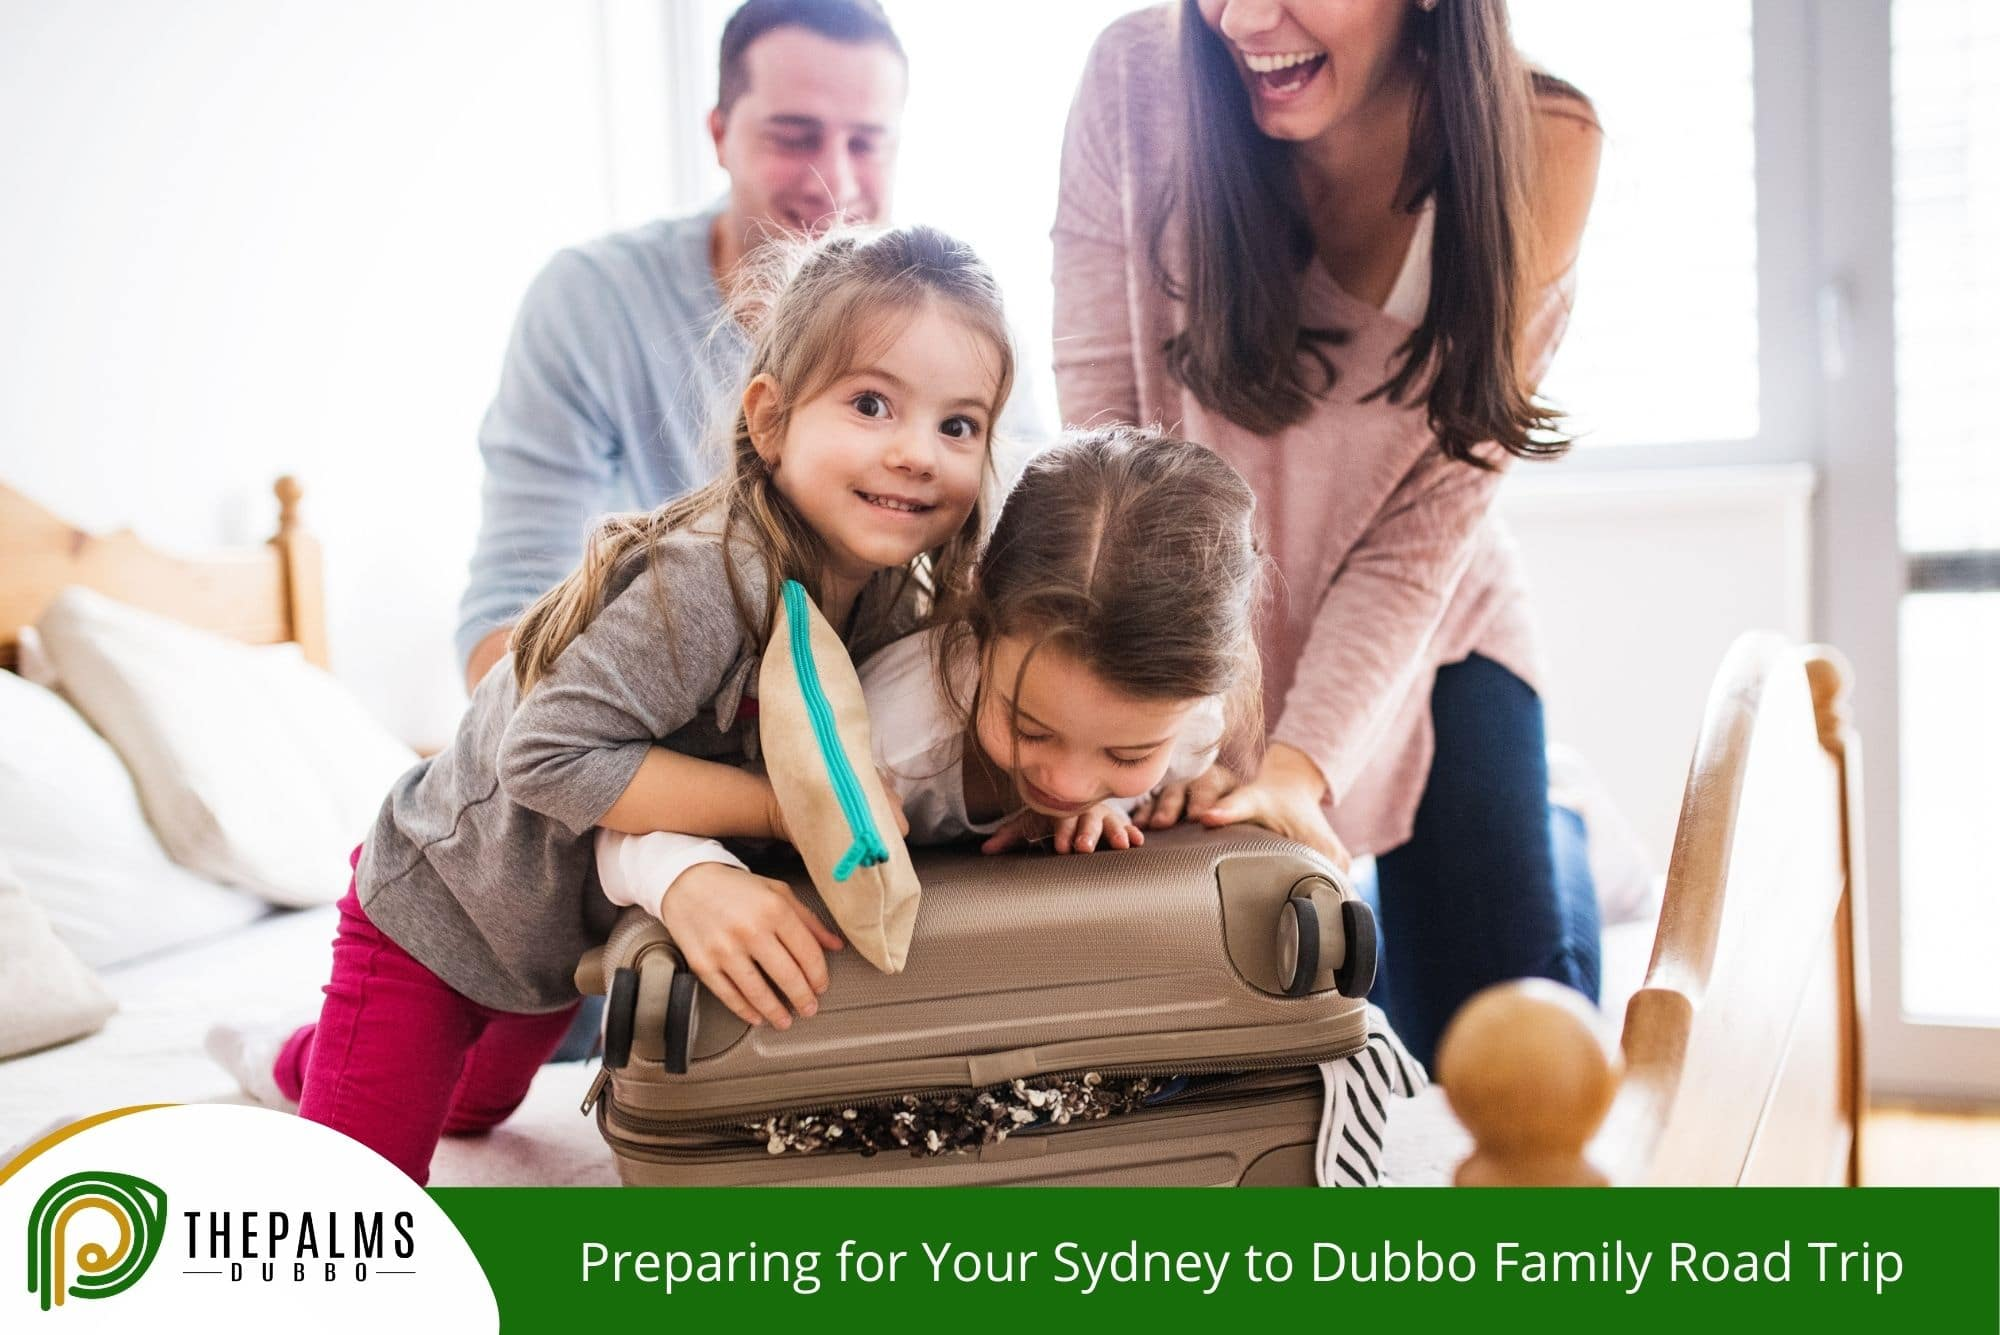 Preparing for Your Sydney to Dubbo Family Road Trip